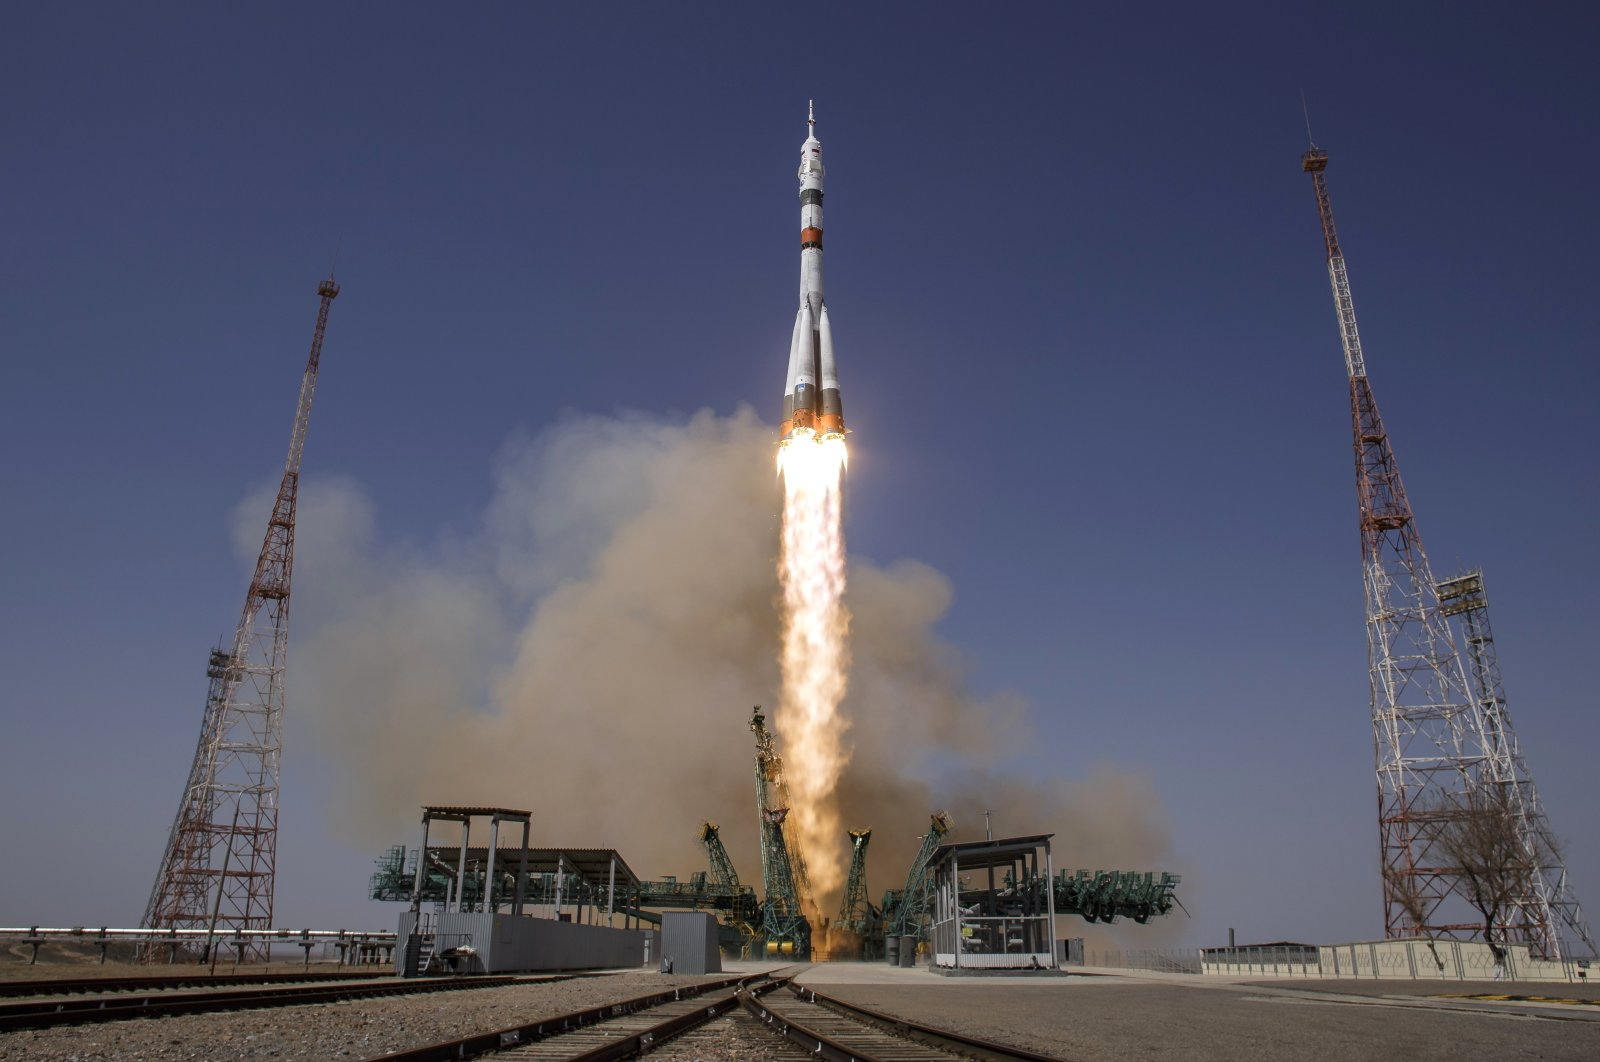 The Soyuz MS-18 rocket is launched with NASA astronaut Mark Vande Hei and Roscosmos cosmonauts Pyotr Dubrov and Oleg Novitskiy, at the Baikonur Cosmodrome in Kazakhstan, Friday, April 9, 2021. (NASA via AP)